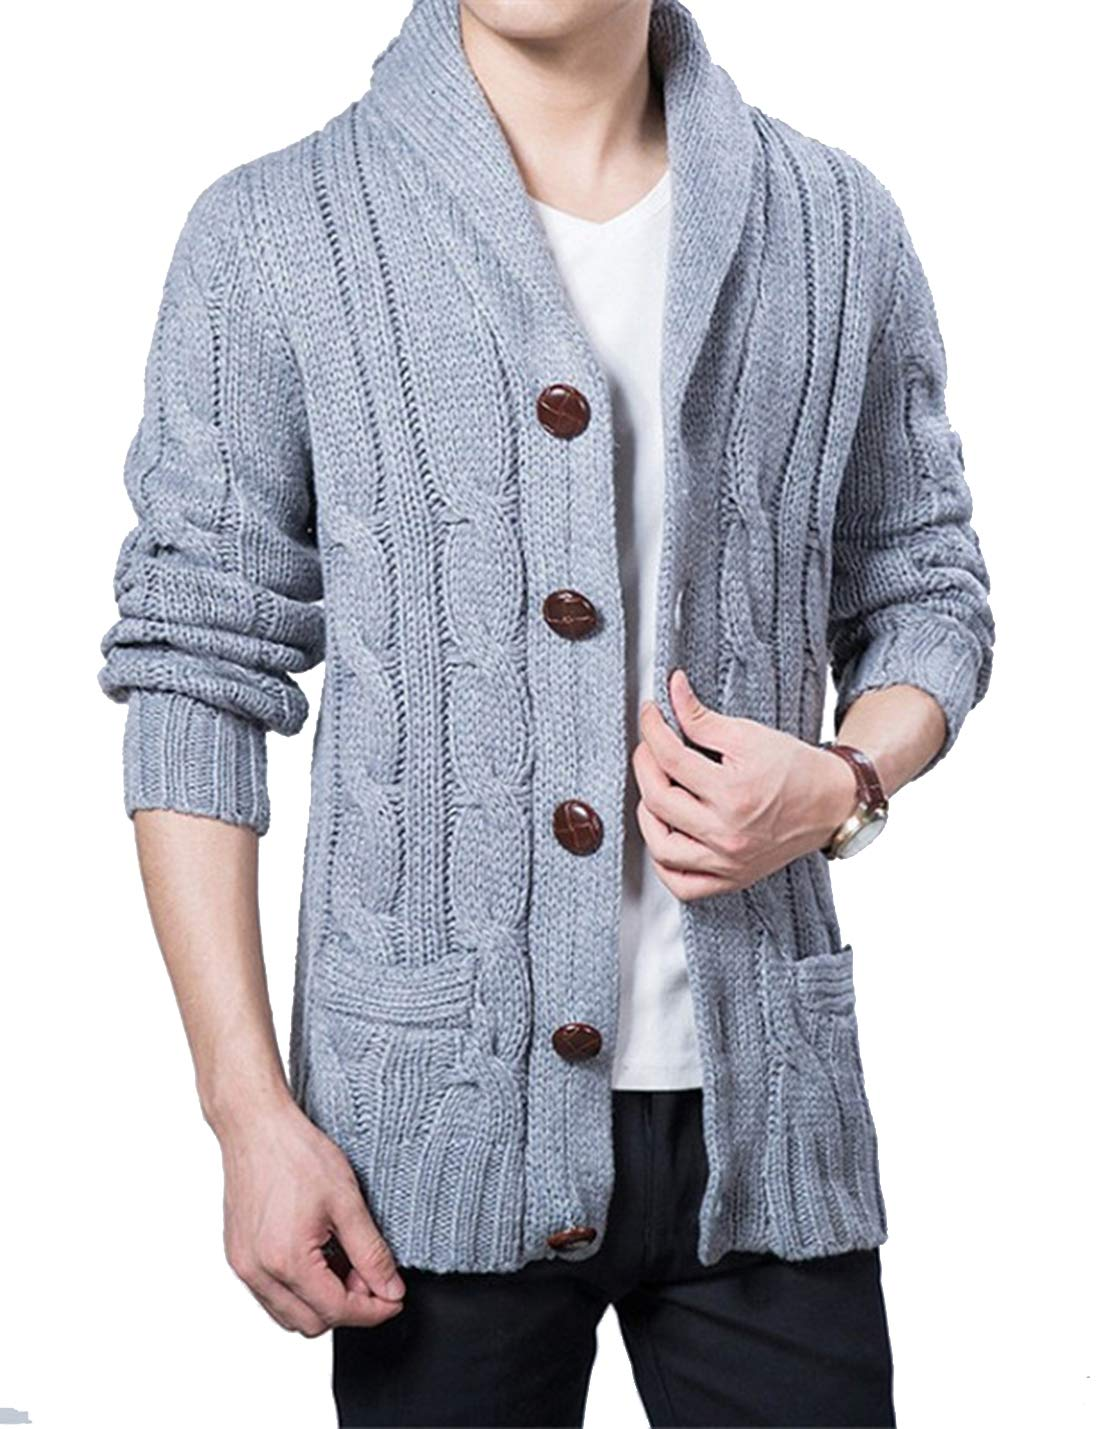 Lentta Mens Heavy Weight Shawl Collar Button Down Cable Knitted Cardigan Sweater (X-Large, Light Grey)